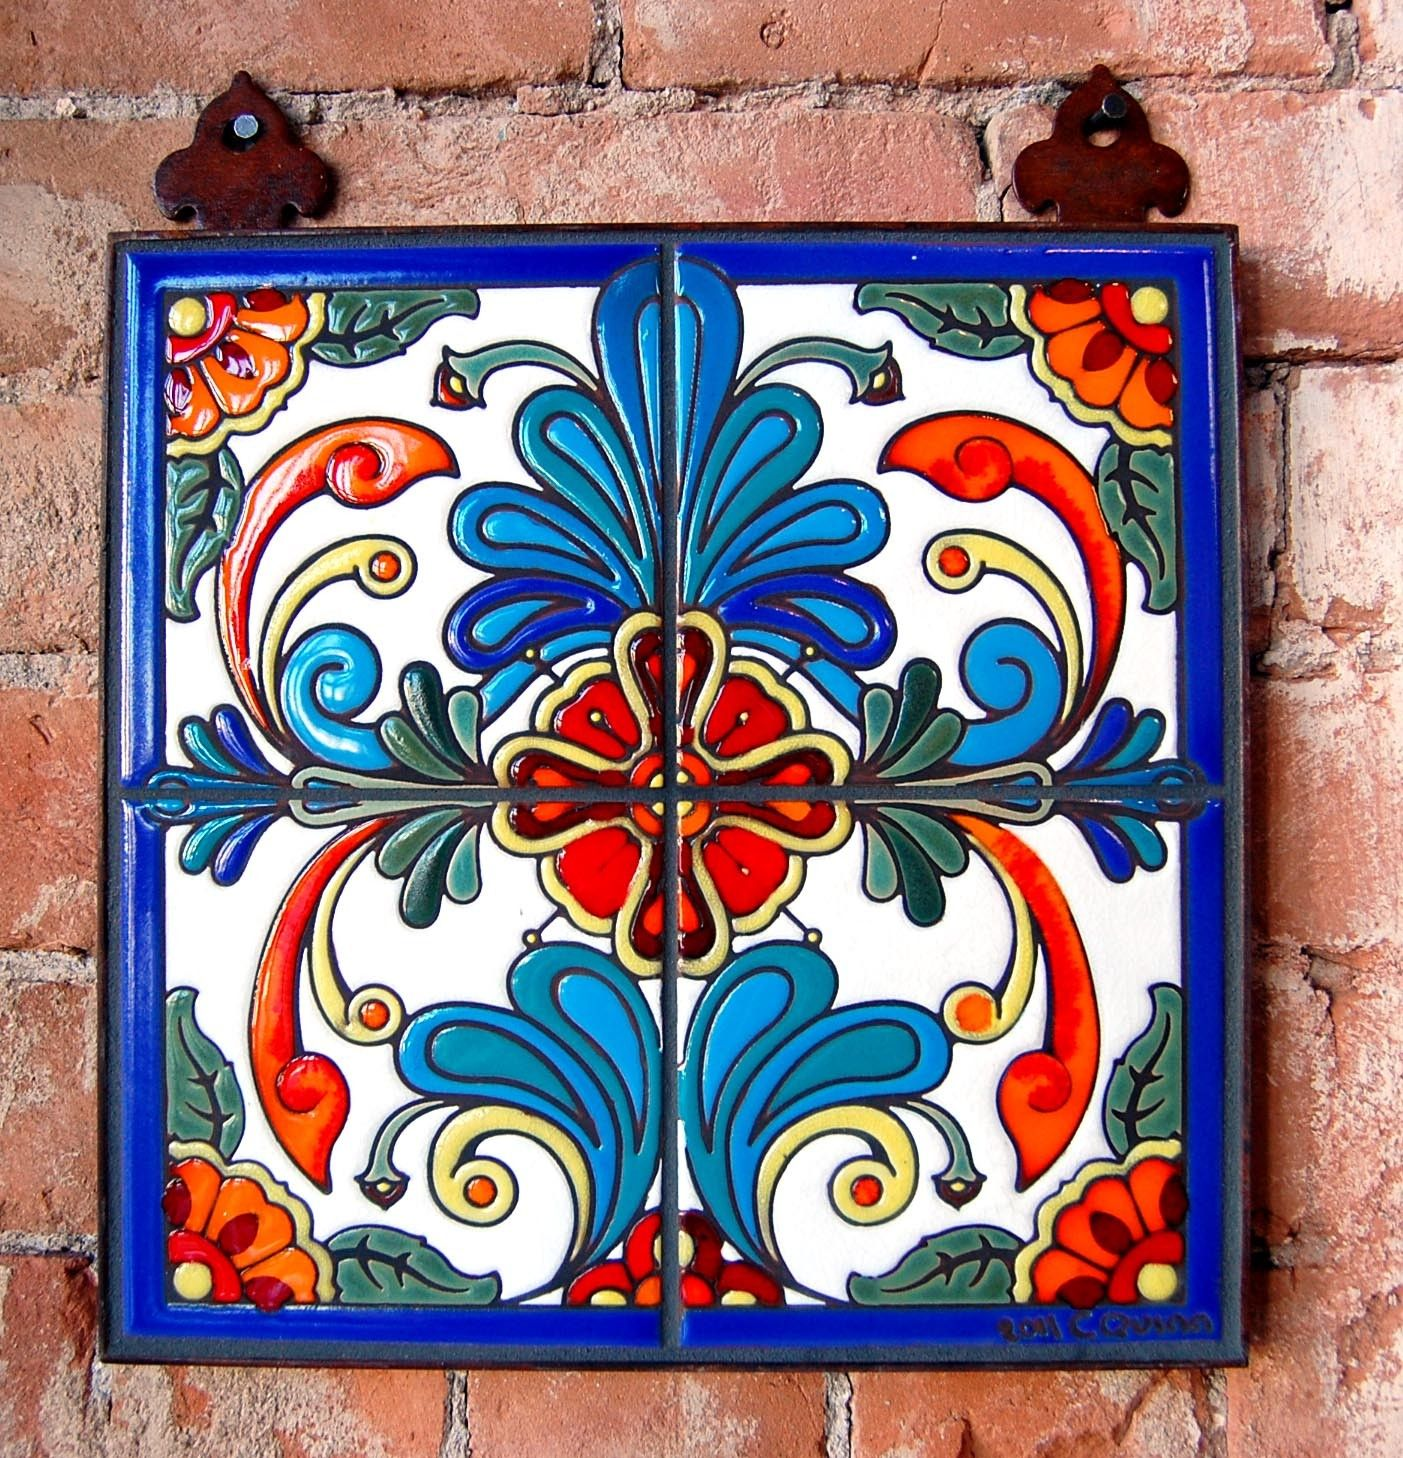 talavera tile decorating with talavera tiles pinterest mexican high relief tiles for kitchen backspalsh wall counter bath shower and stair risers